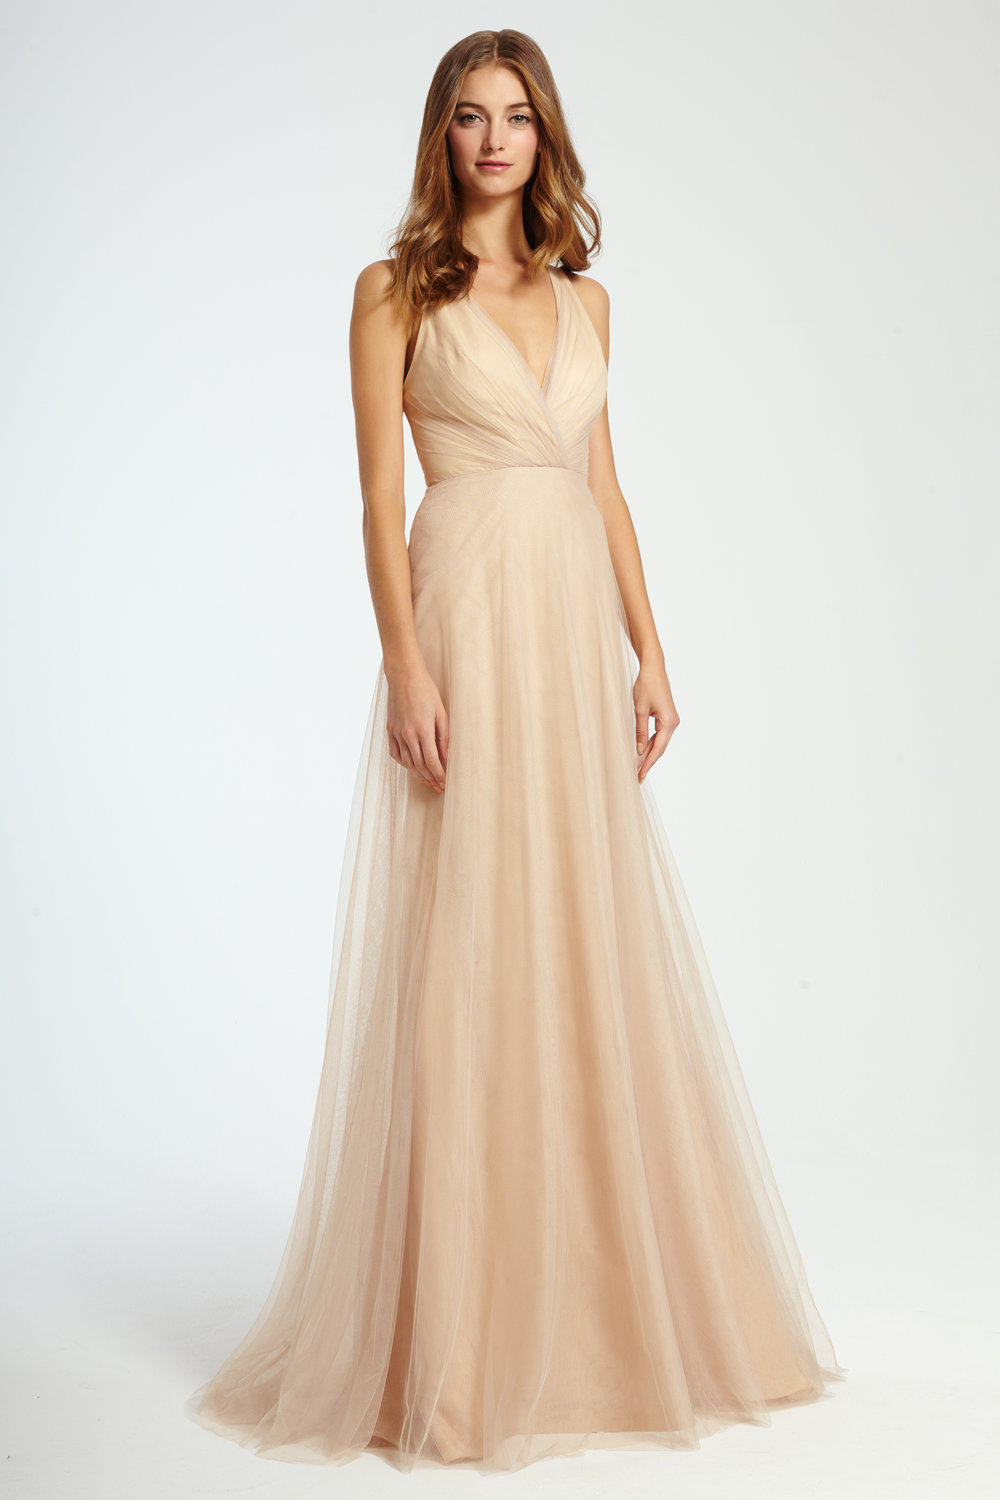 Monique Lhuillier Ava-450341